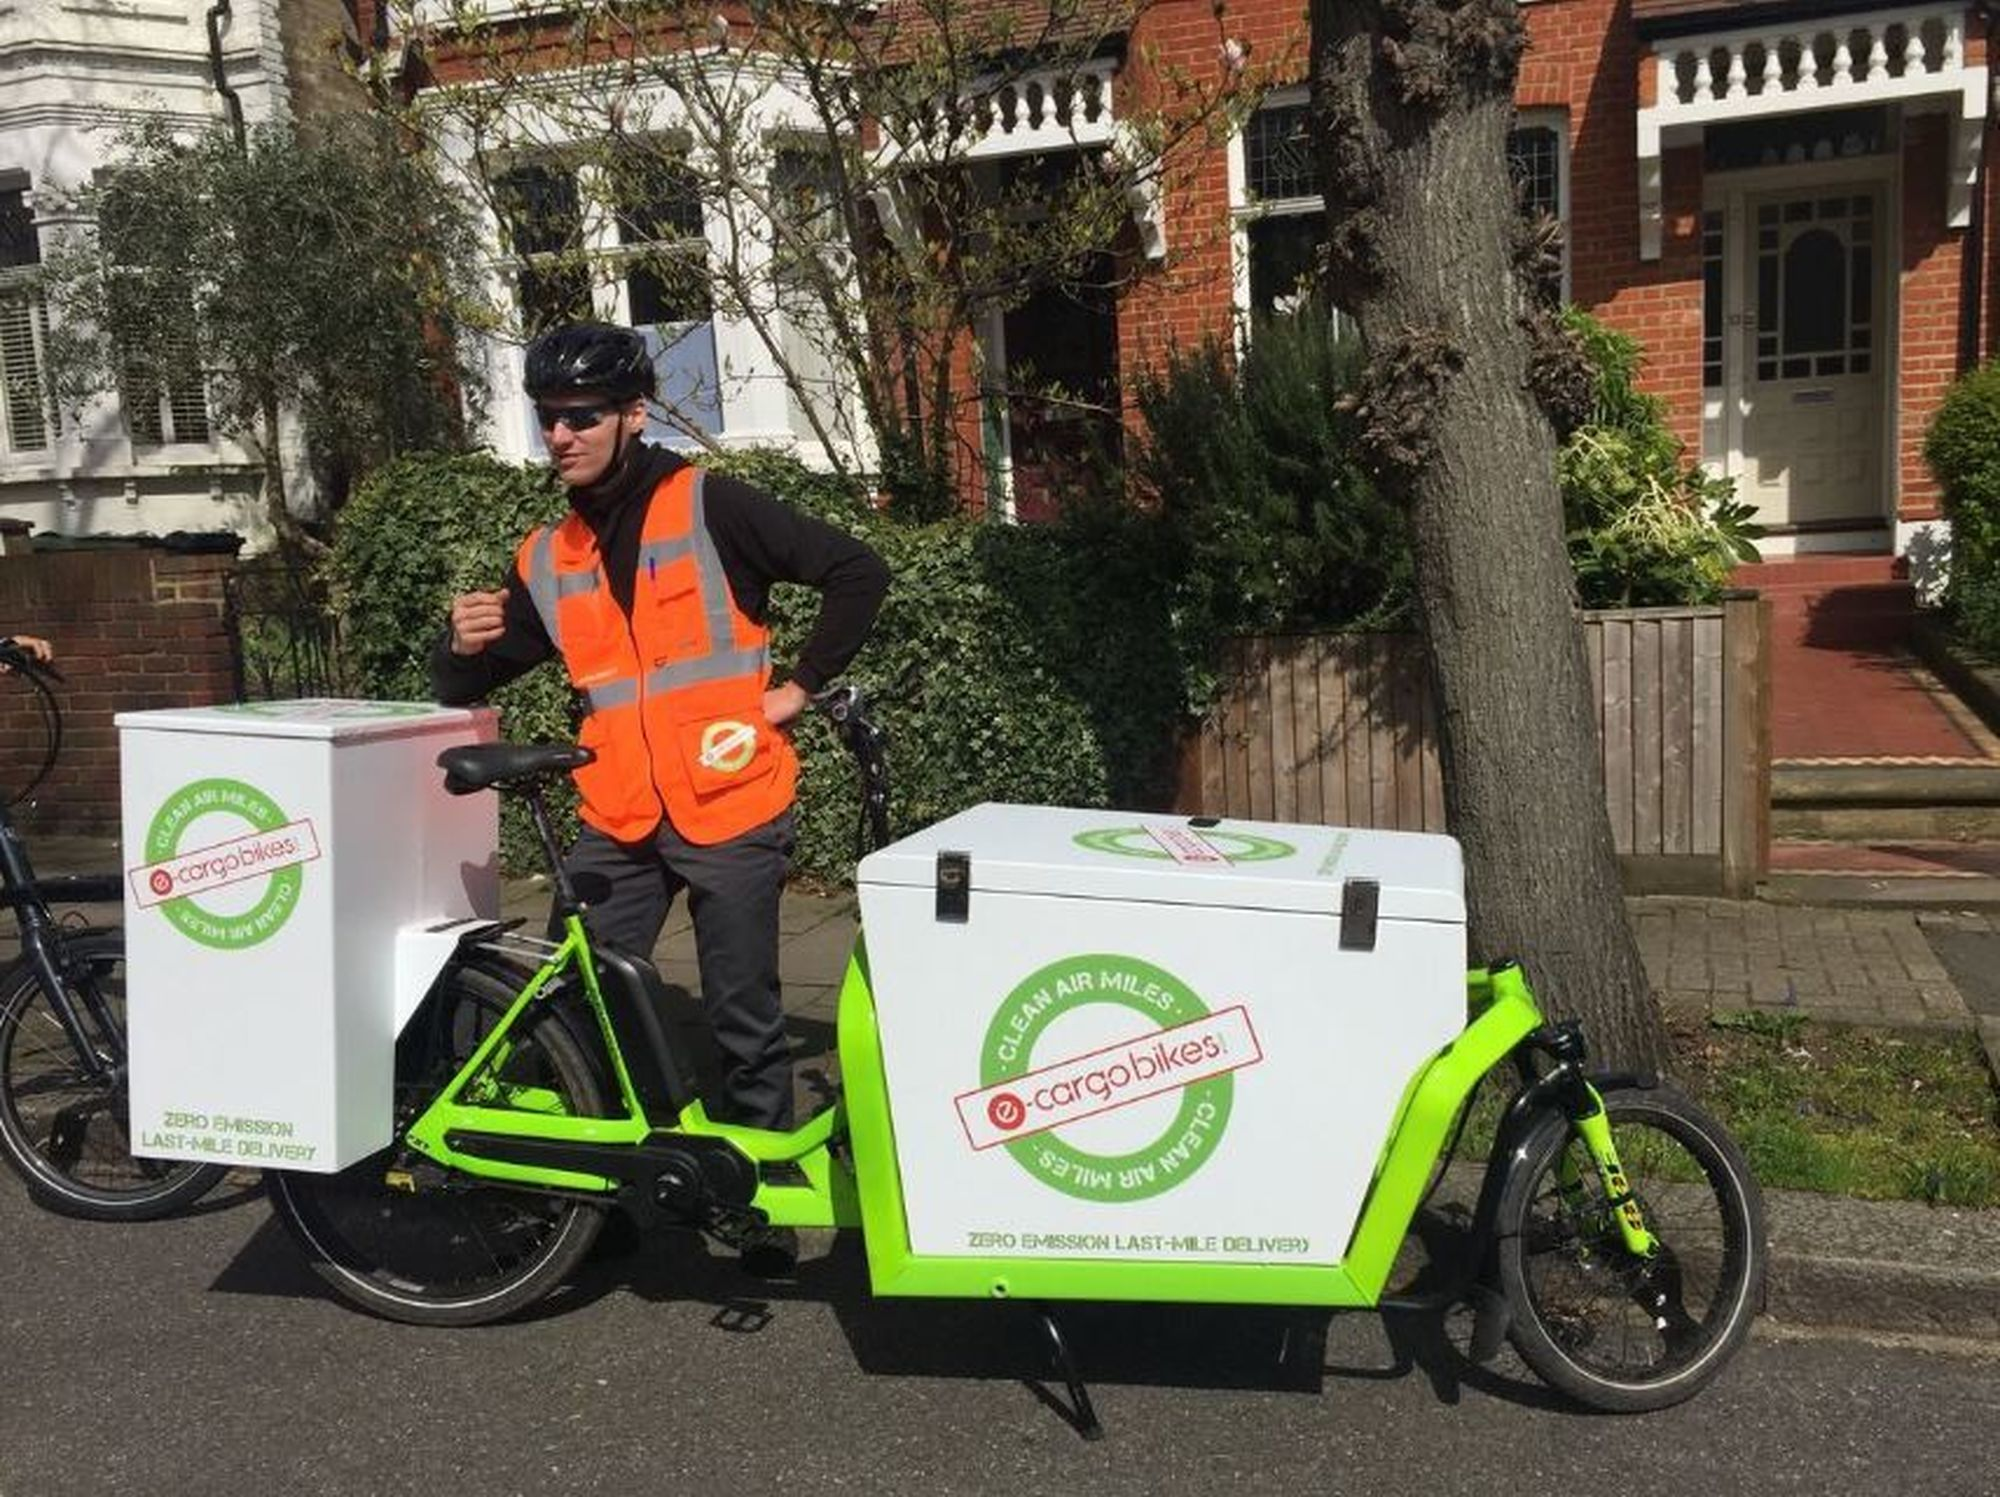 E-cargobikes.com Rider stands with e-cargo bicycle